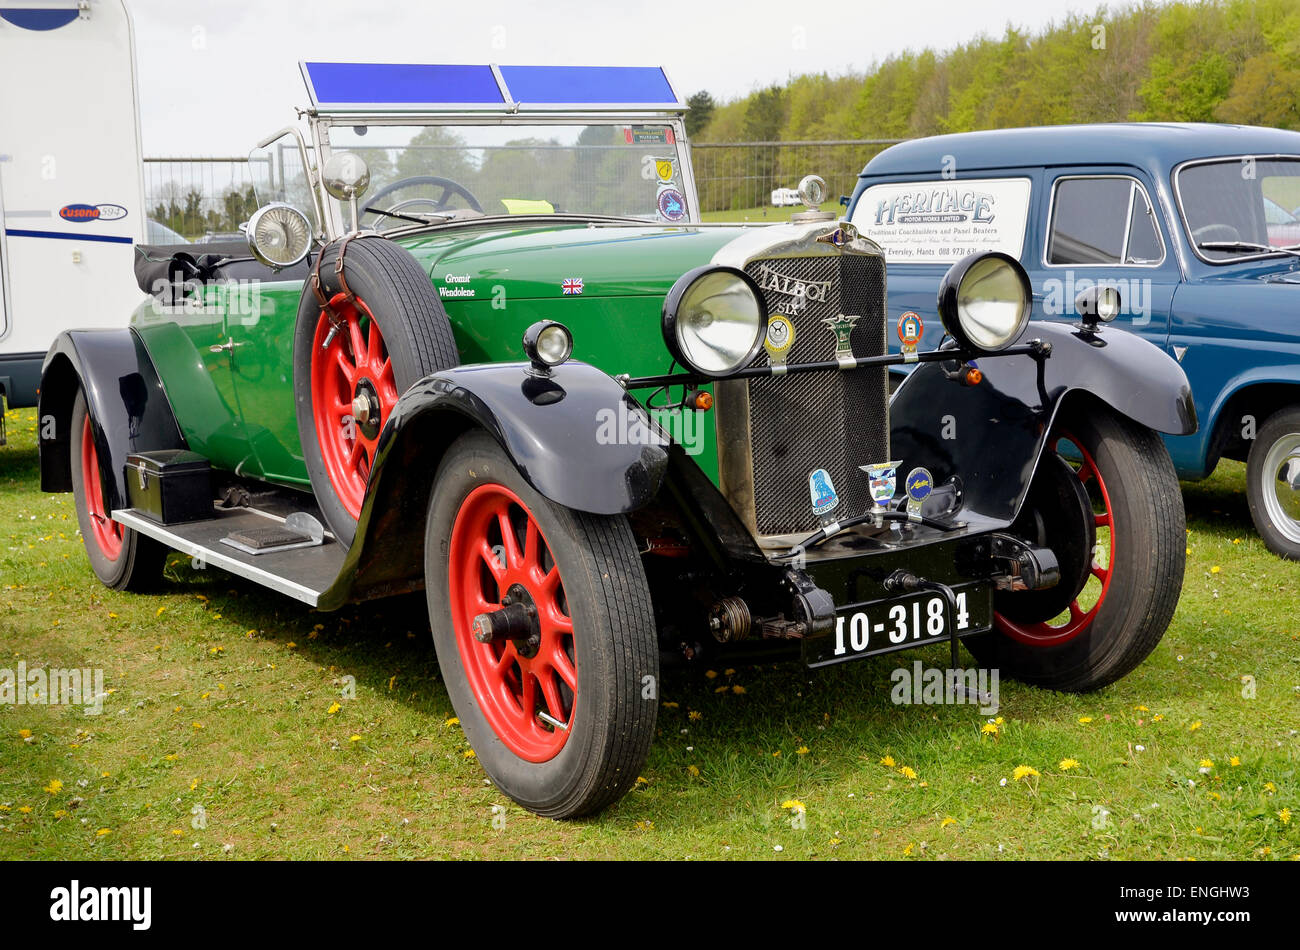 A classic British car - a 1929 Talbot 14/45 registration IO 3184 ...